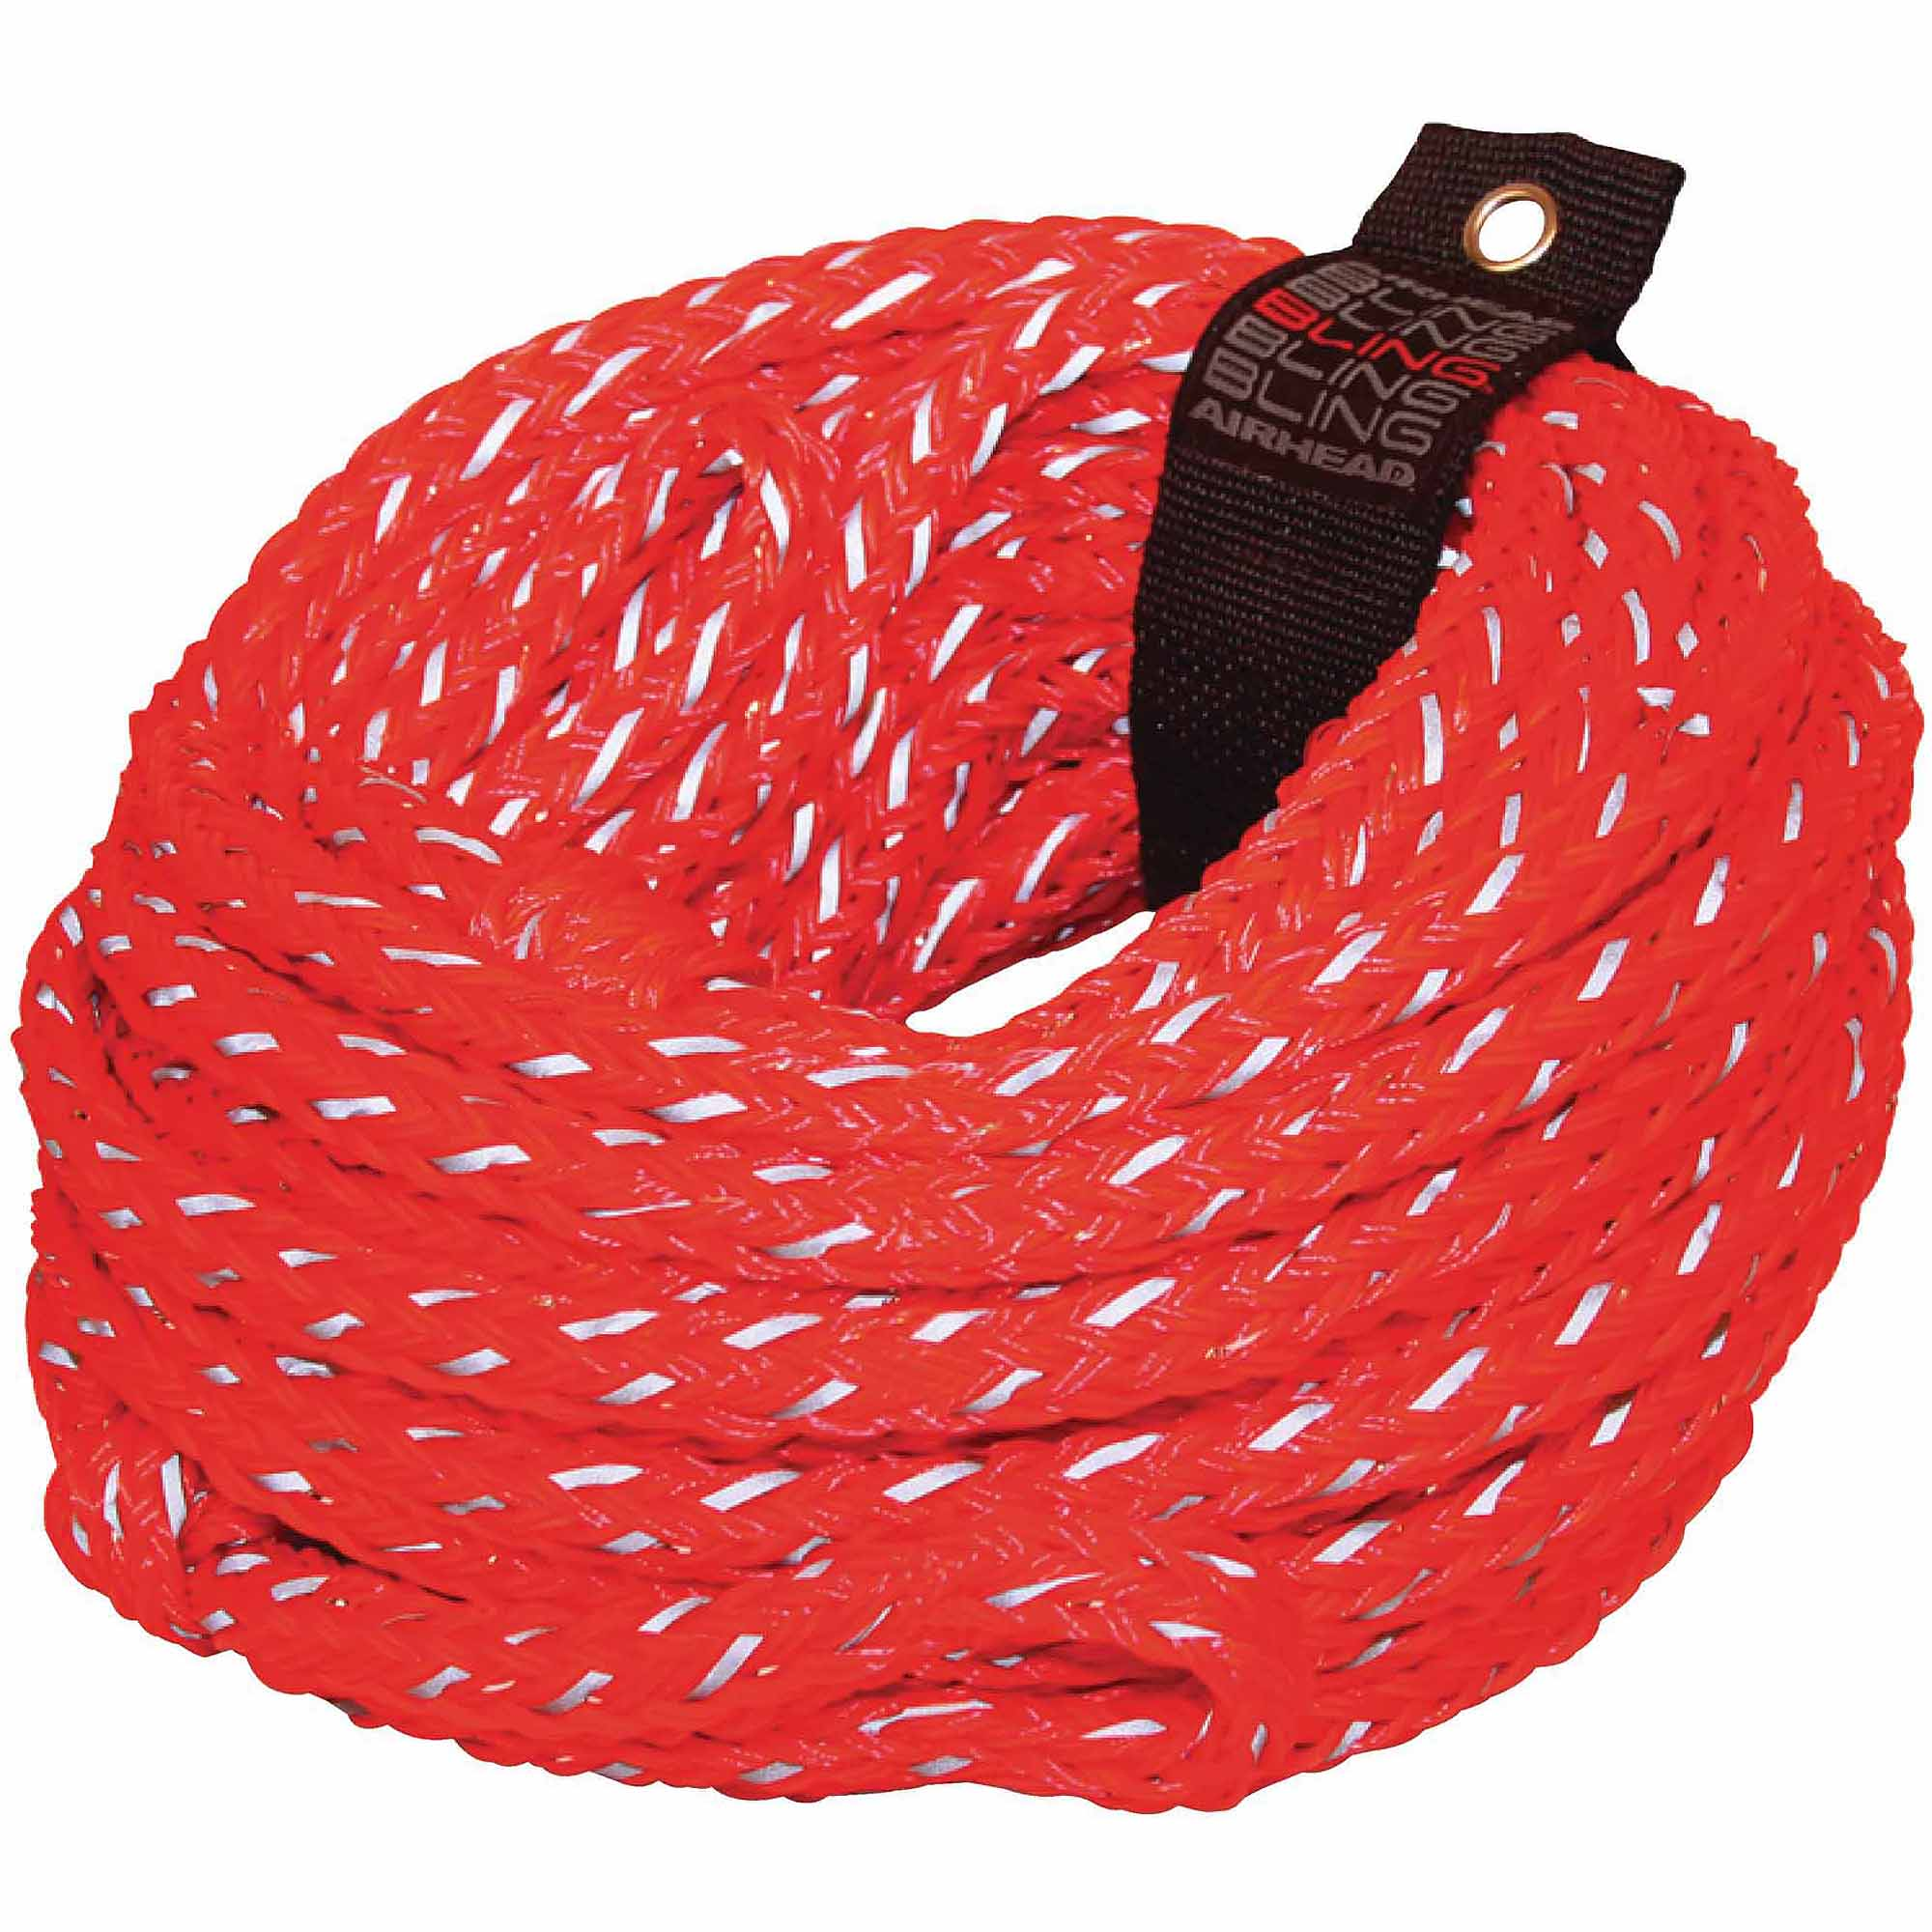 Airhead Bling Tube Rope, 60'